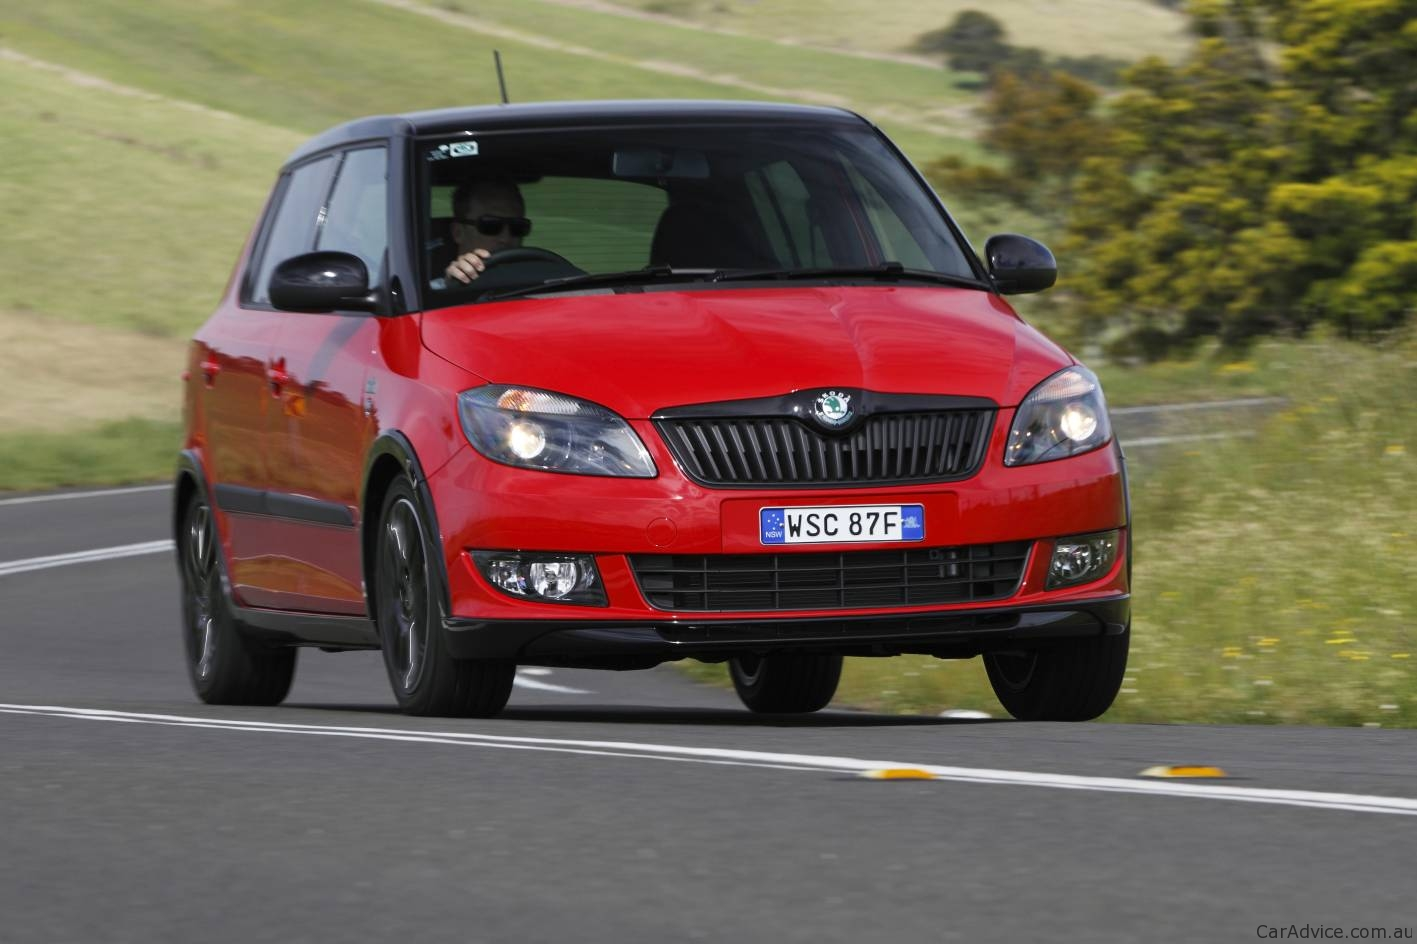 skoda fabia monte carlo 2012 specifications spec and speed. Black Bedroom Furniture Sets. Home Design Ideas